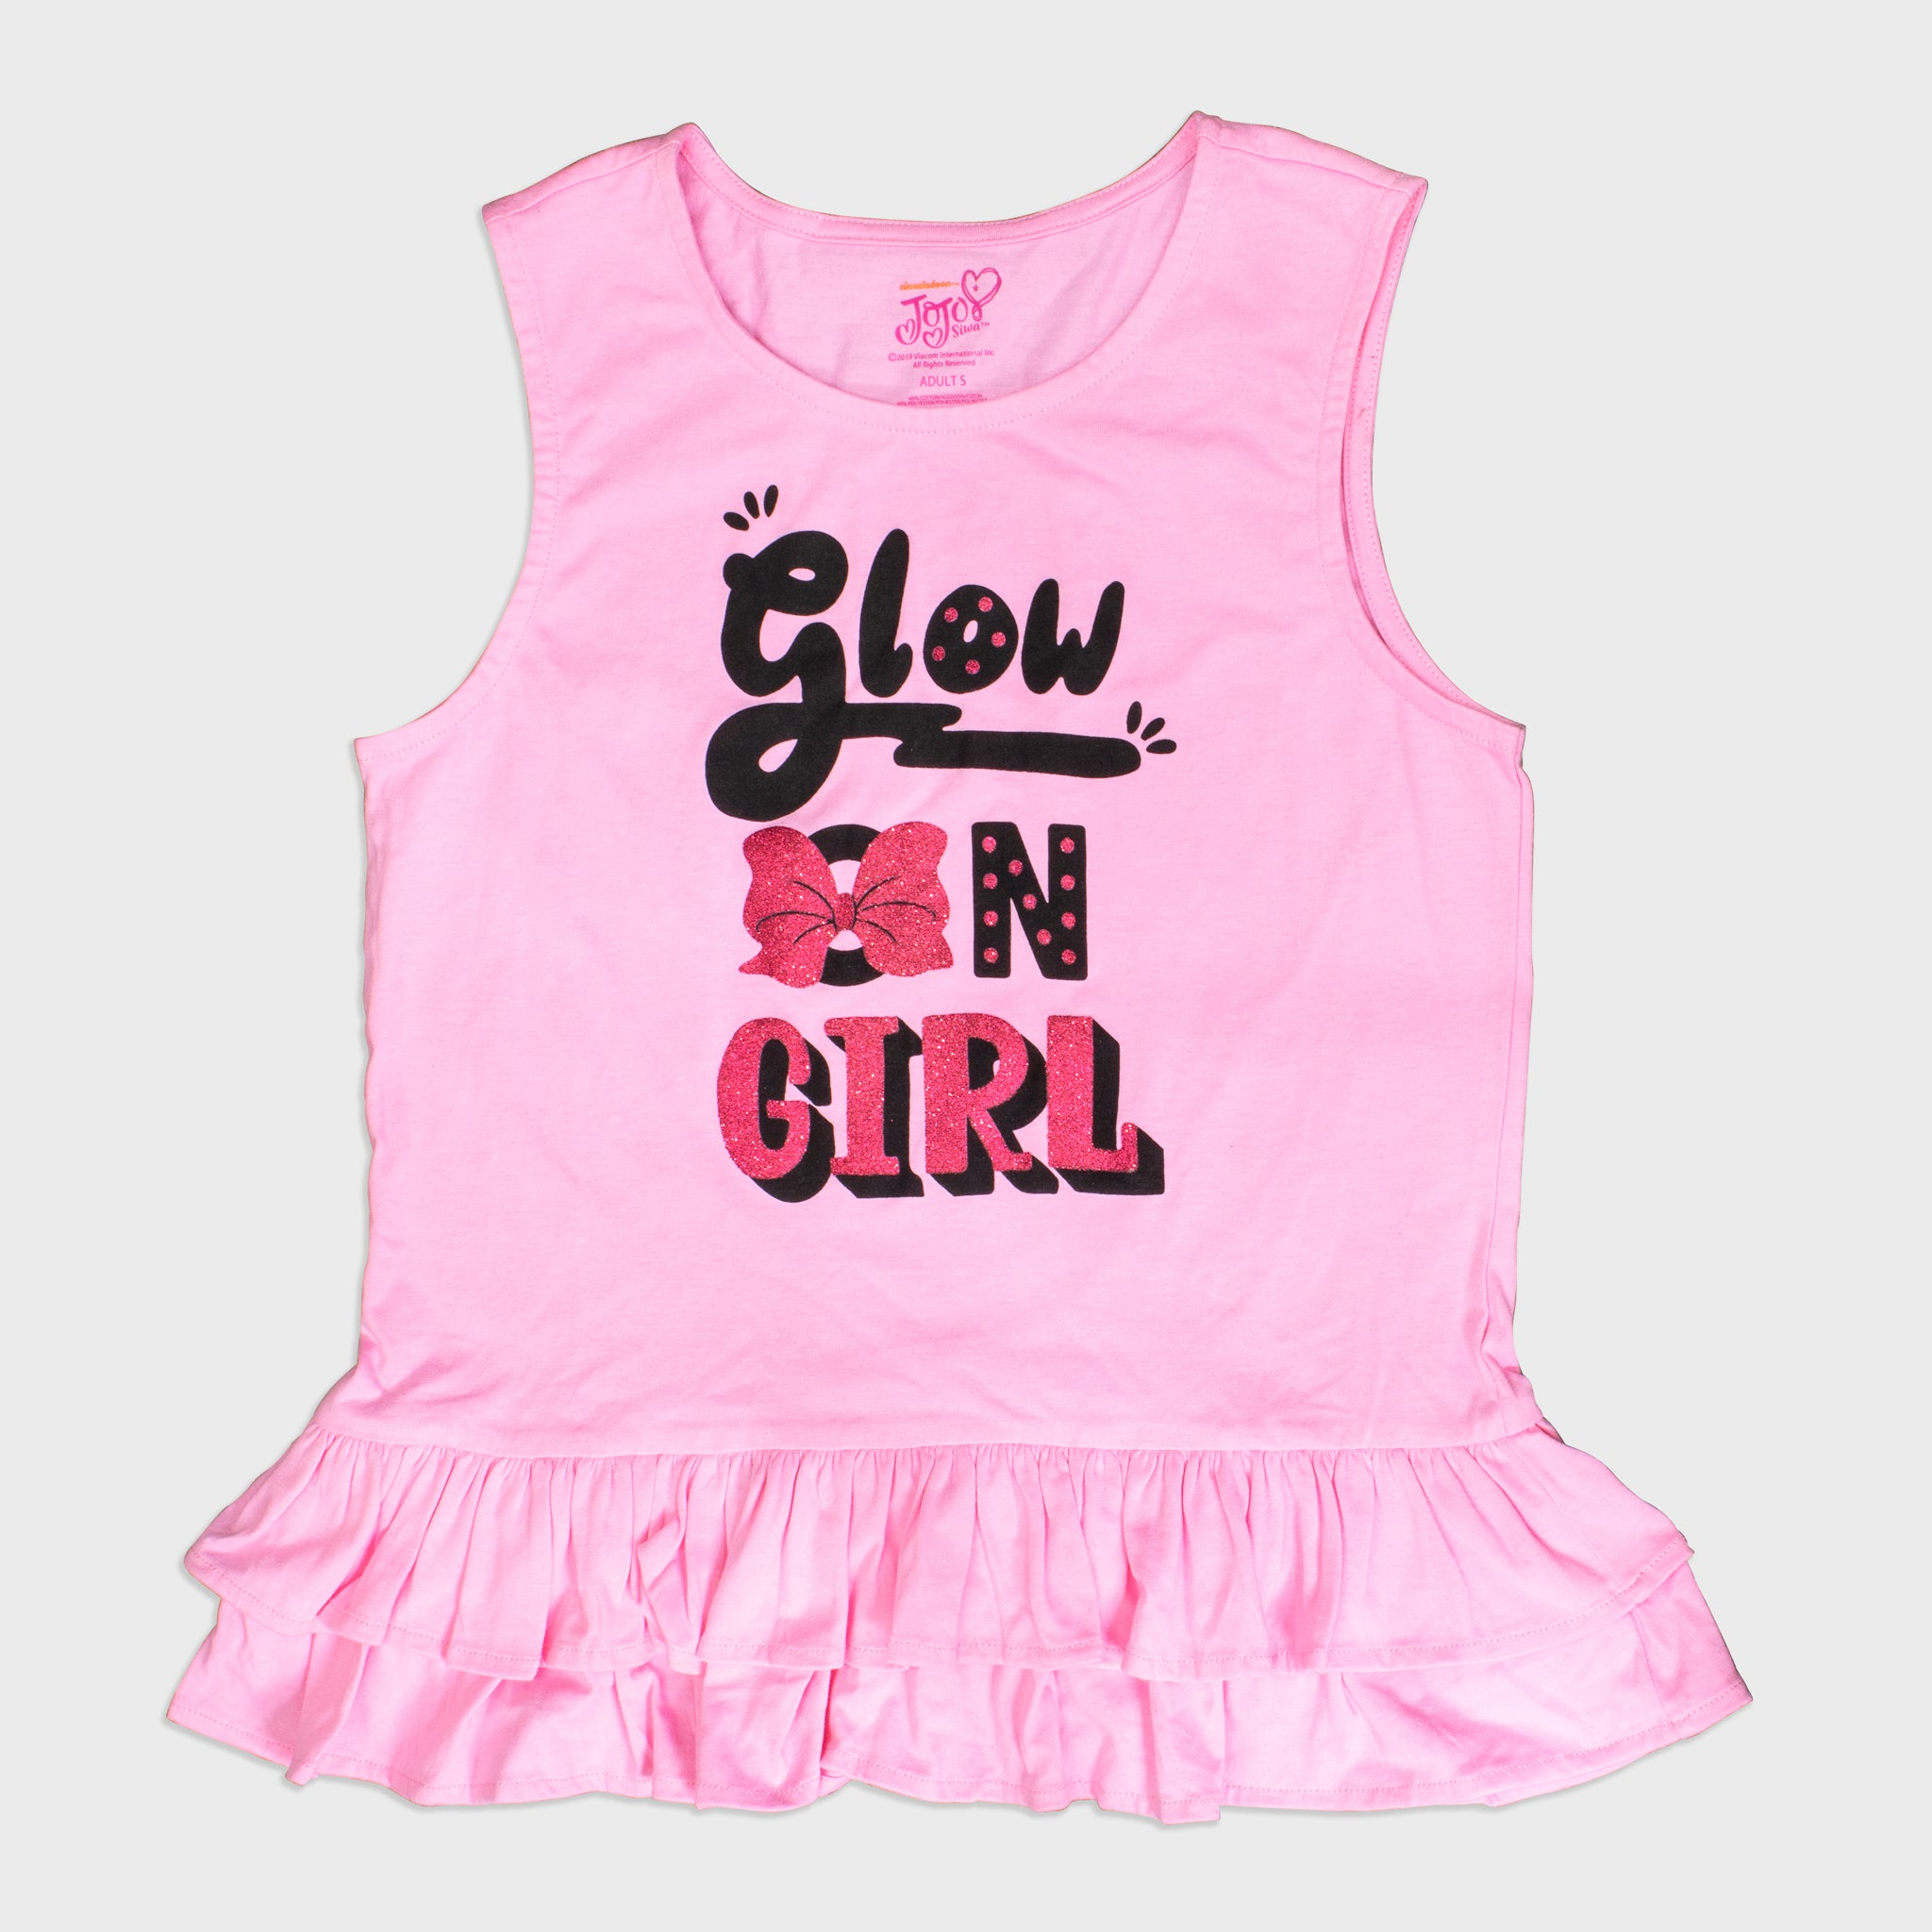 jojo siwa box collectible apparel tank top t-shirt cute bows nickelodeon